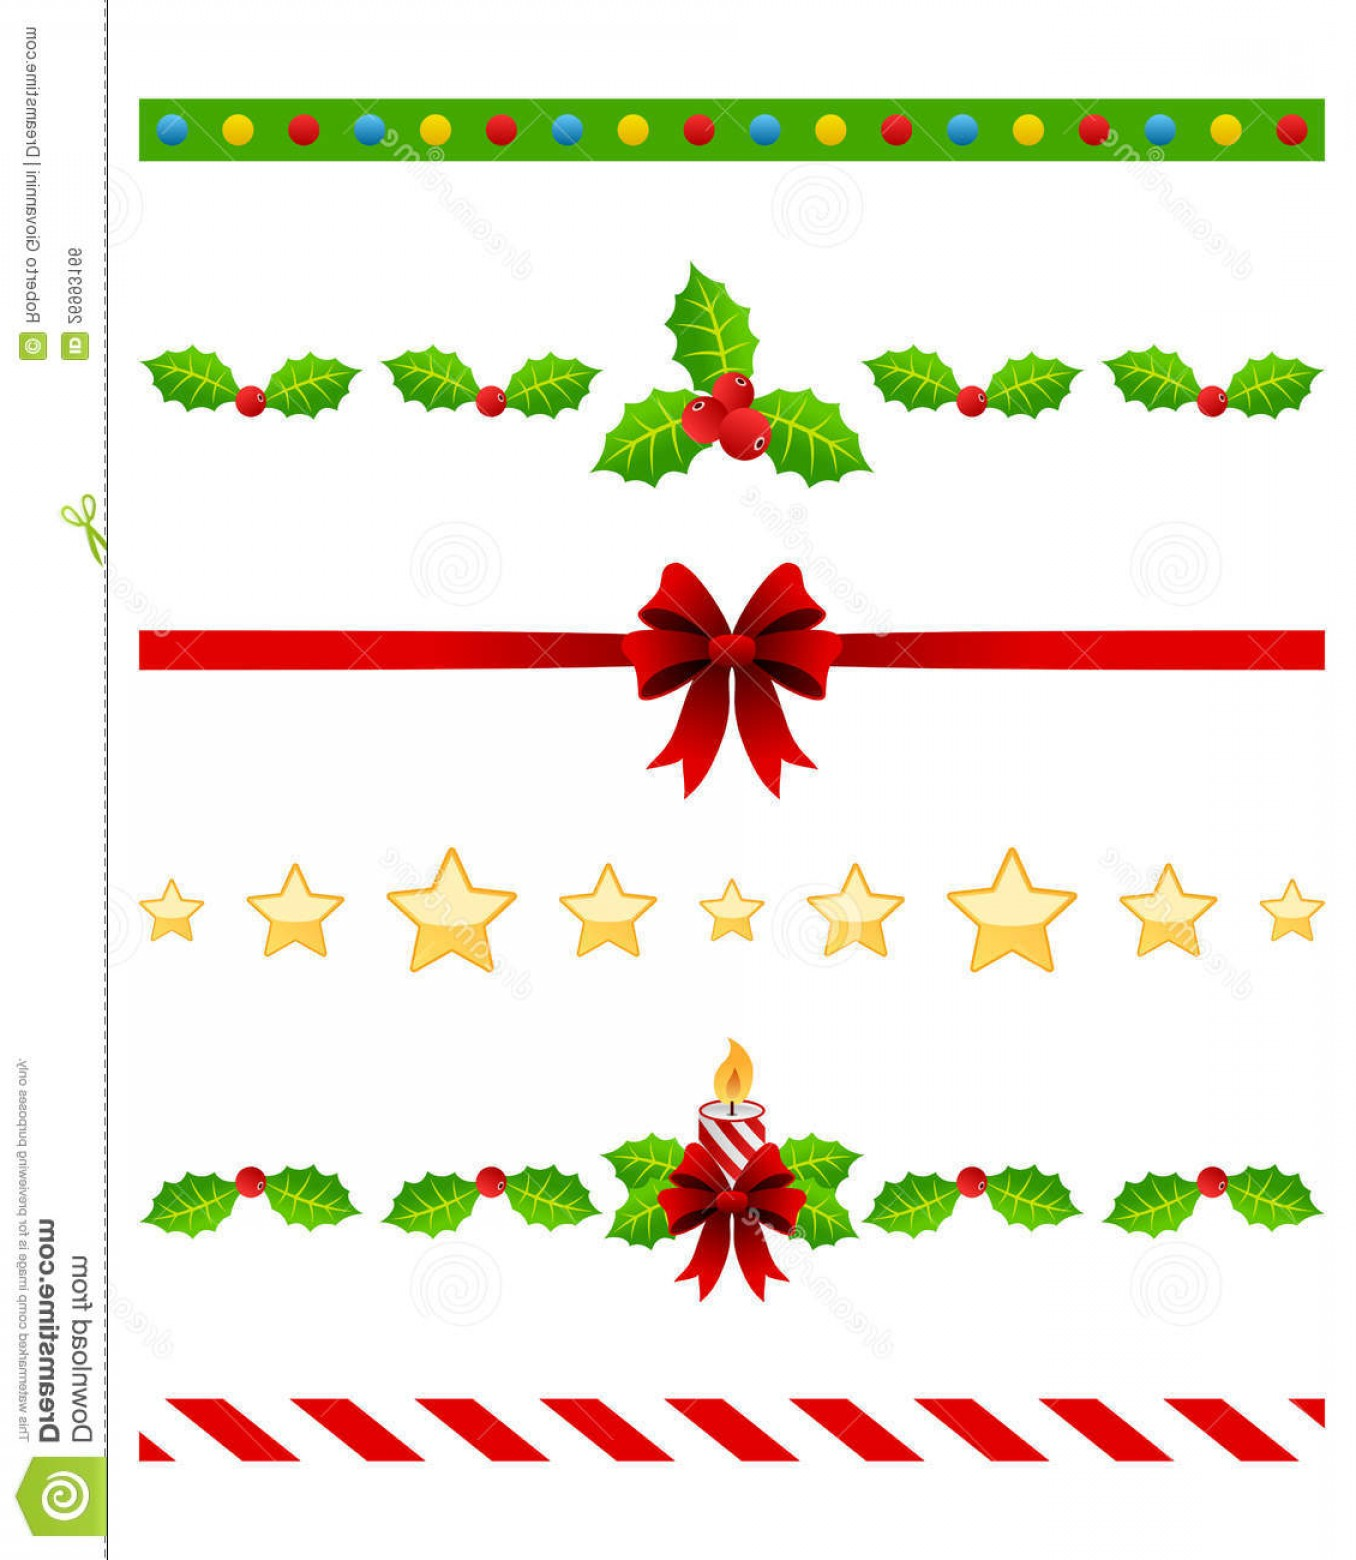 Christmas Divider Vector: Royalty Free Stock Image Christmas Dividers Set Image